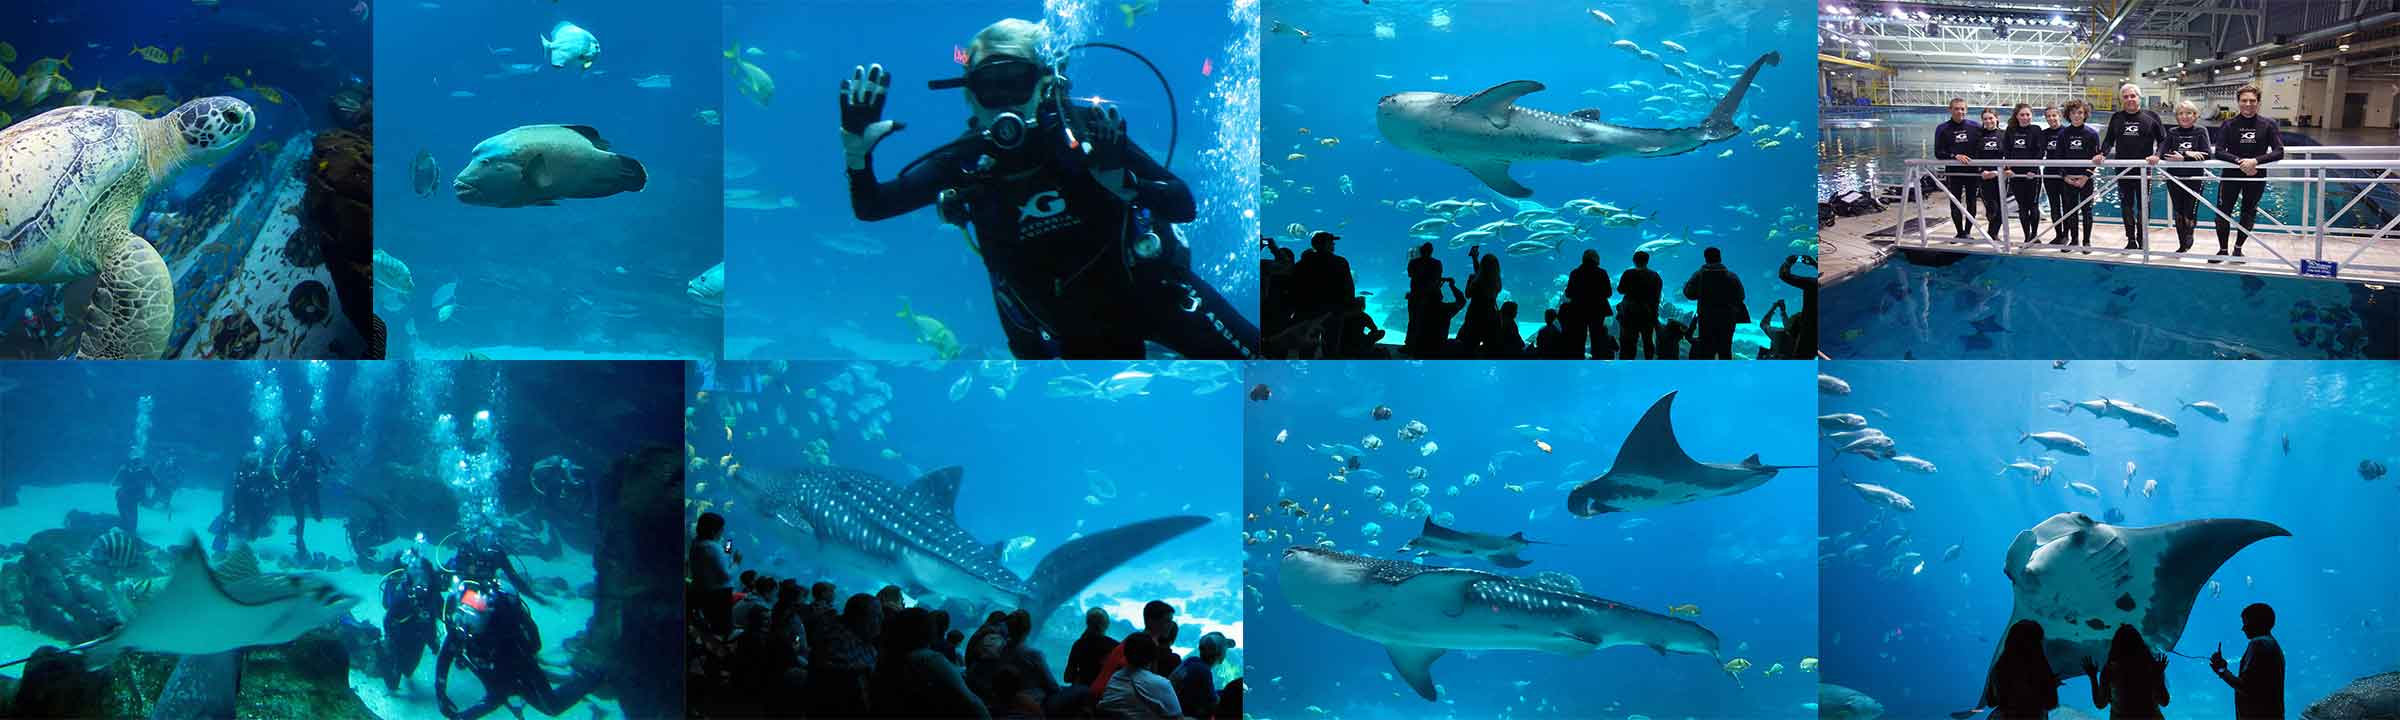 Indoor Oceans Diving With Whale Sharks At Georgia